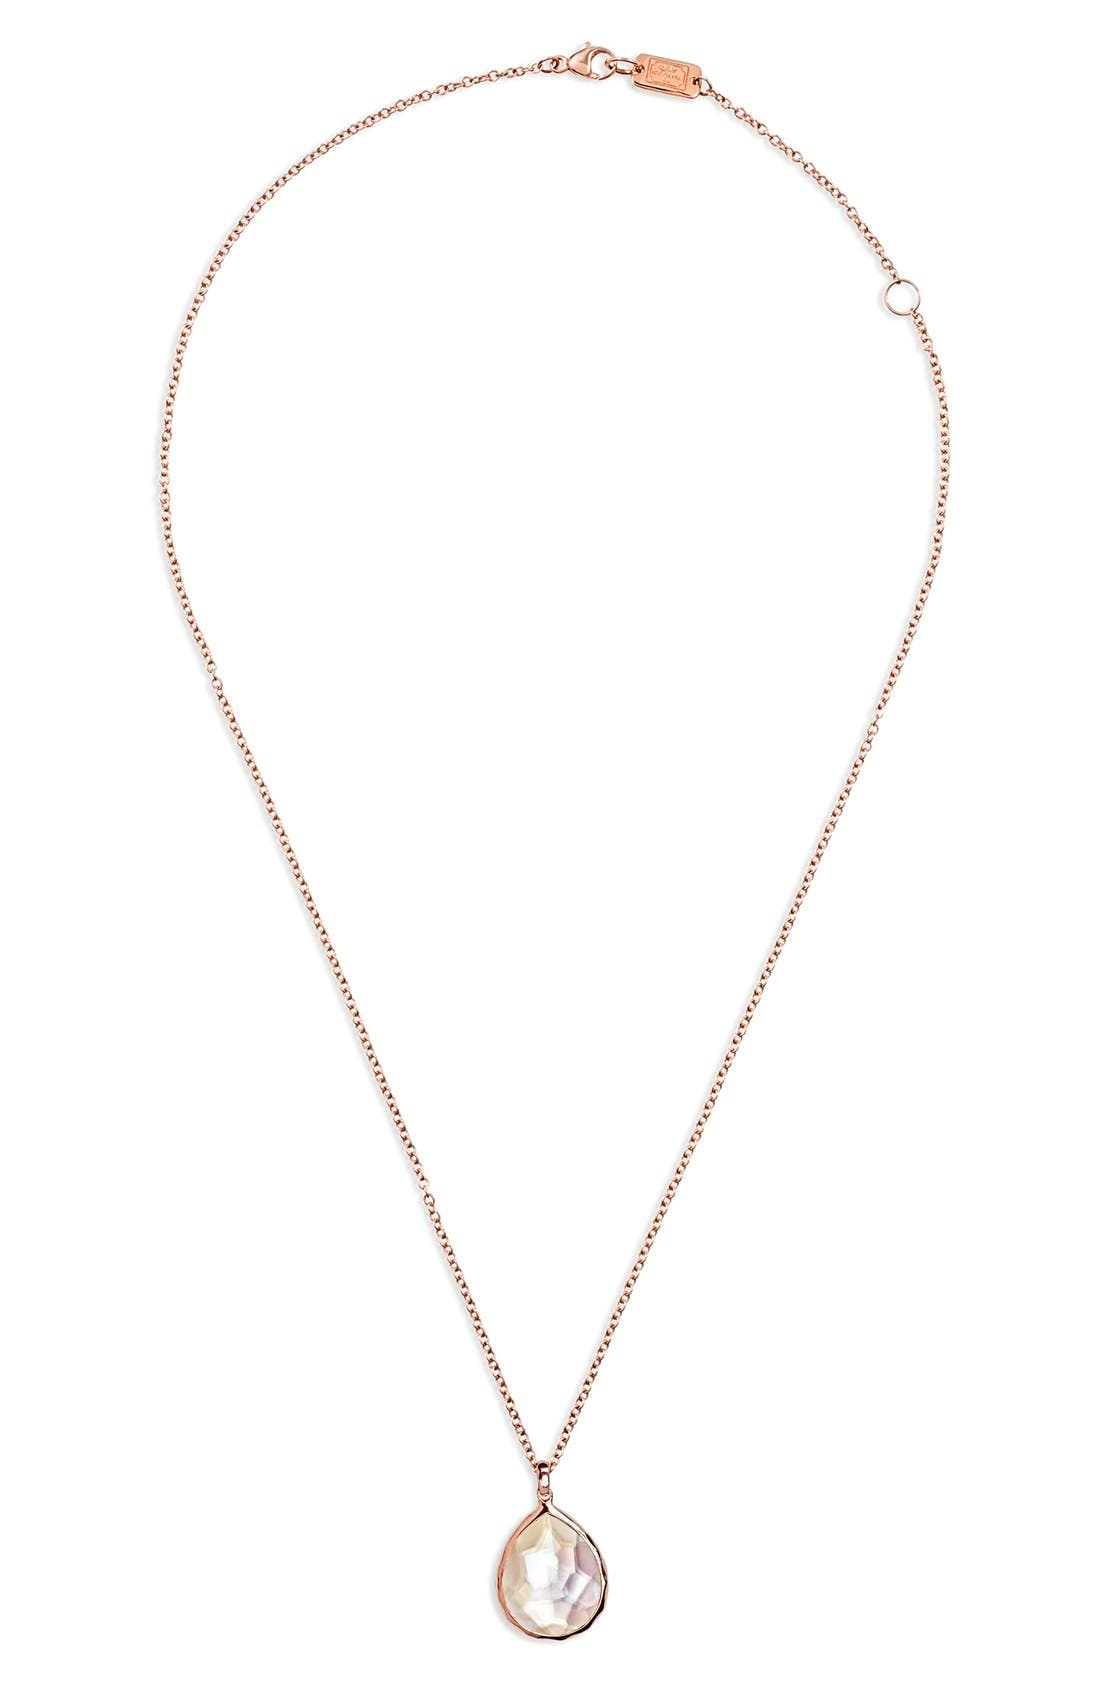 Alternate Image 1 Selected - Ippolita 'Wonderland' Mini Teardrop Pendant Necklace (Online Only)